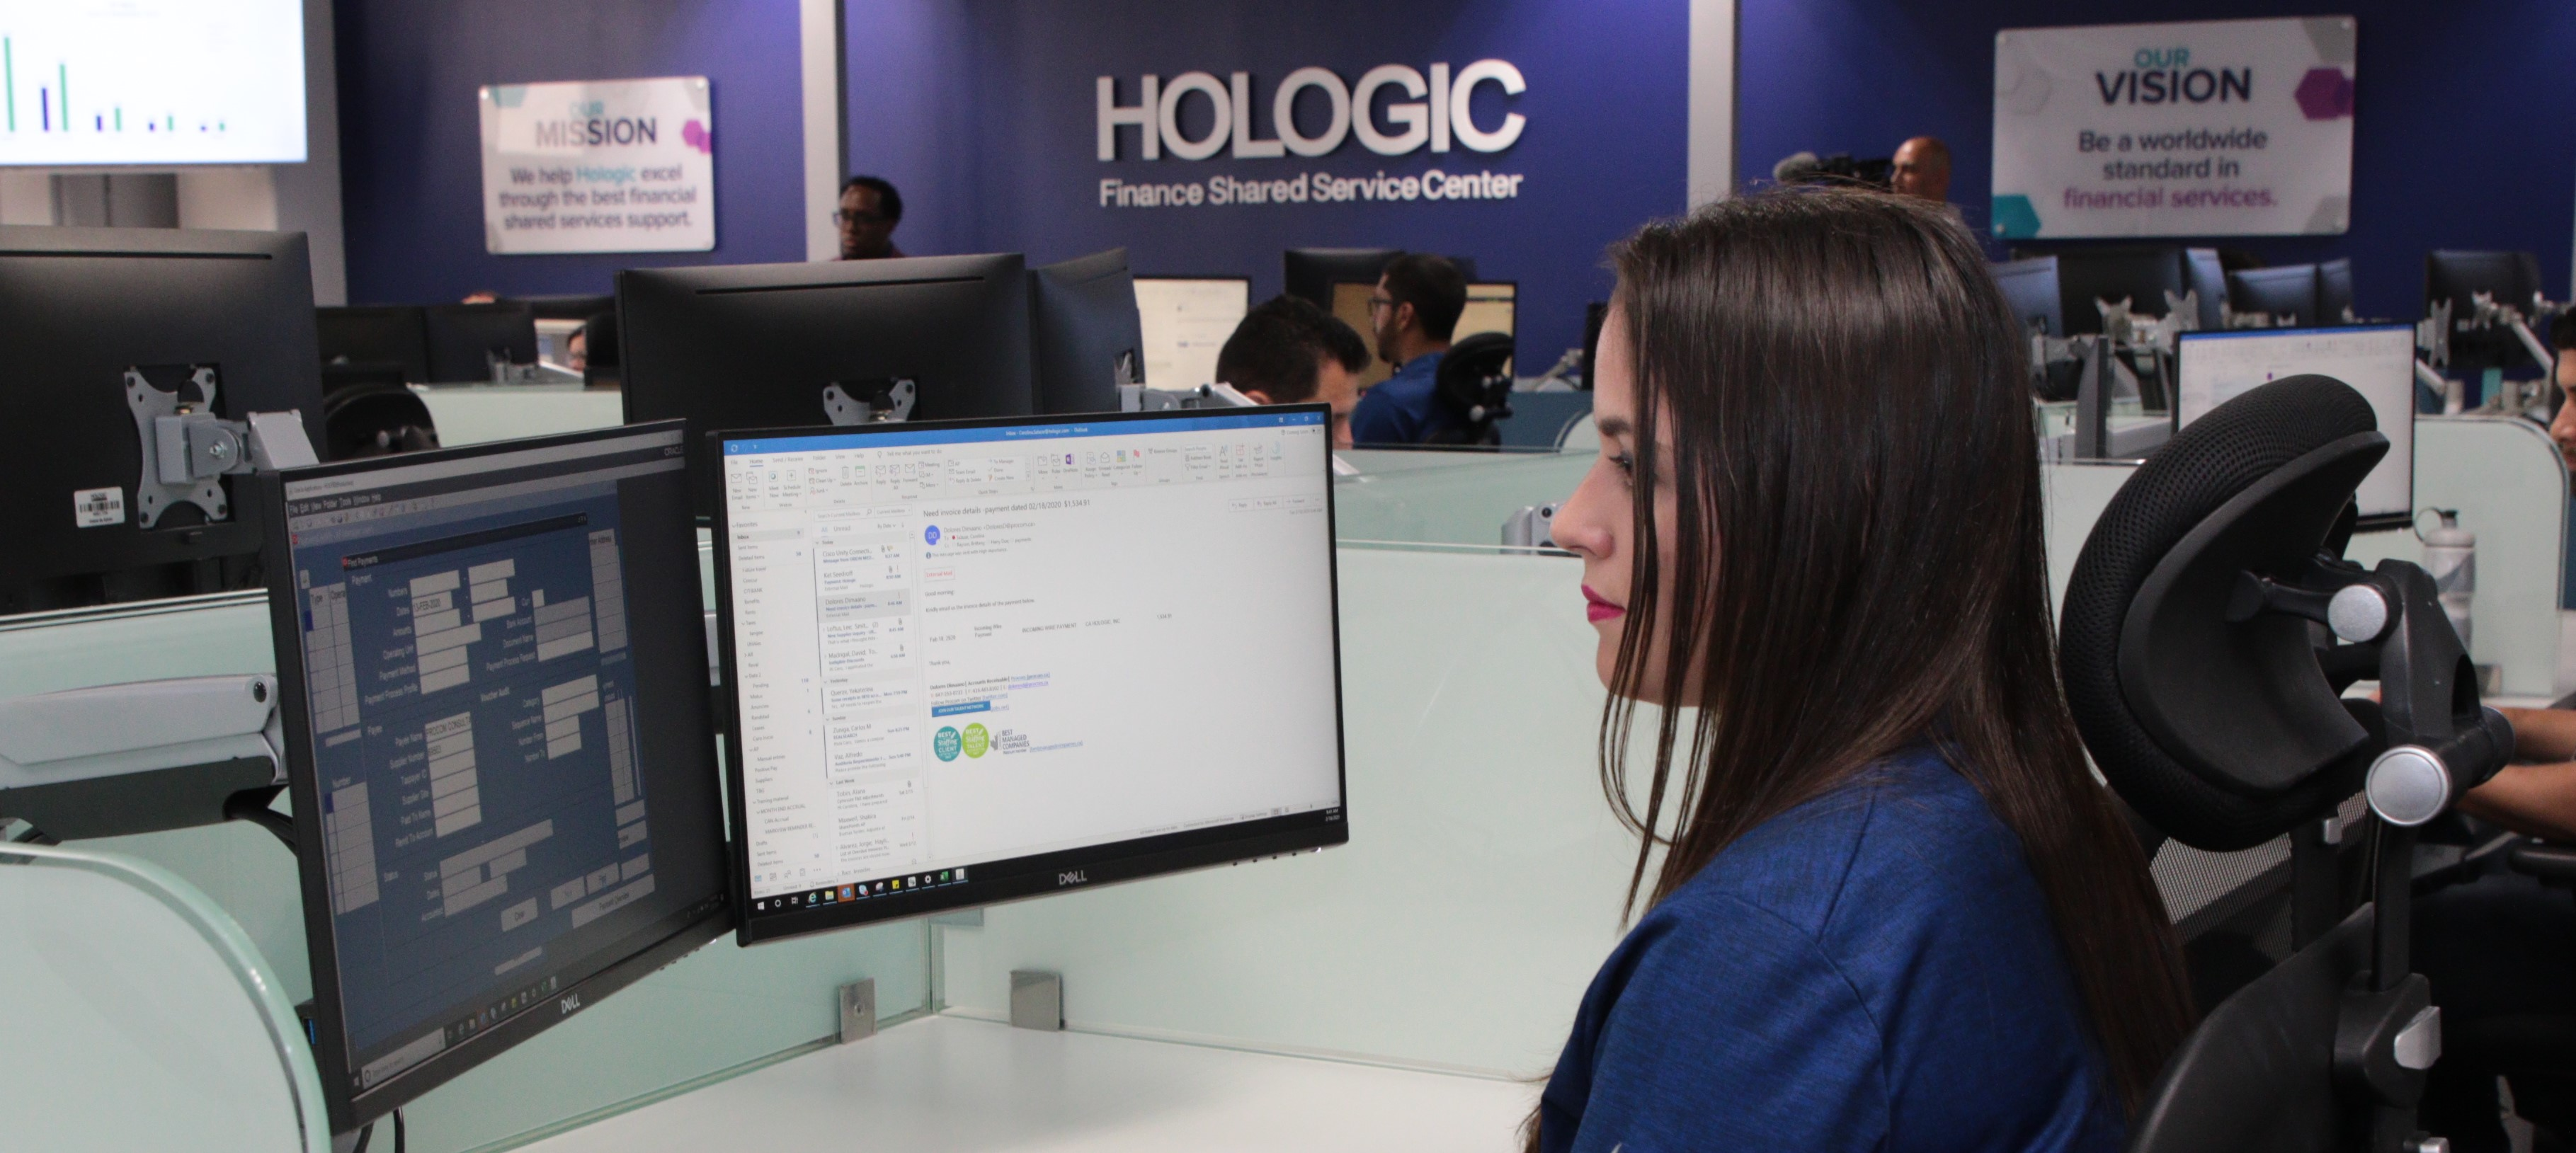 Hologic Expands Costa Rican Operations with New Financial Shared Services Center